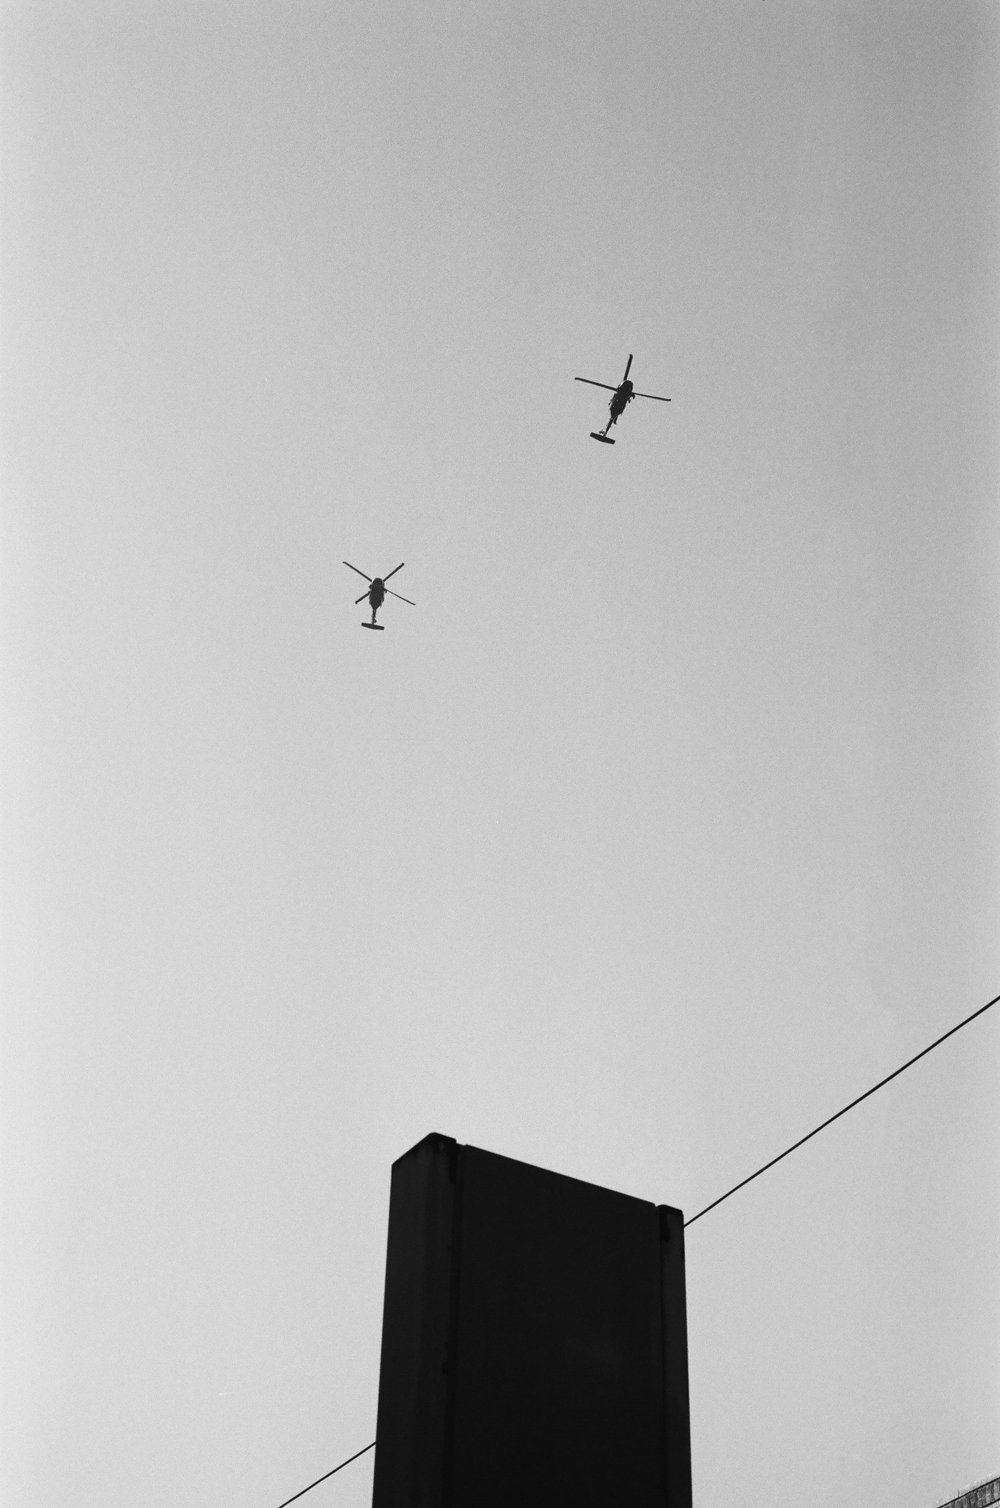 Surveying helicopters.   Staten Island, New York City. 2017.